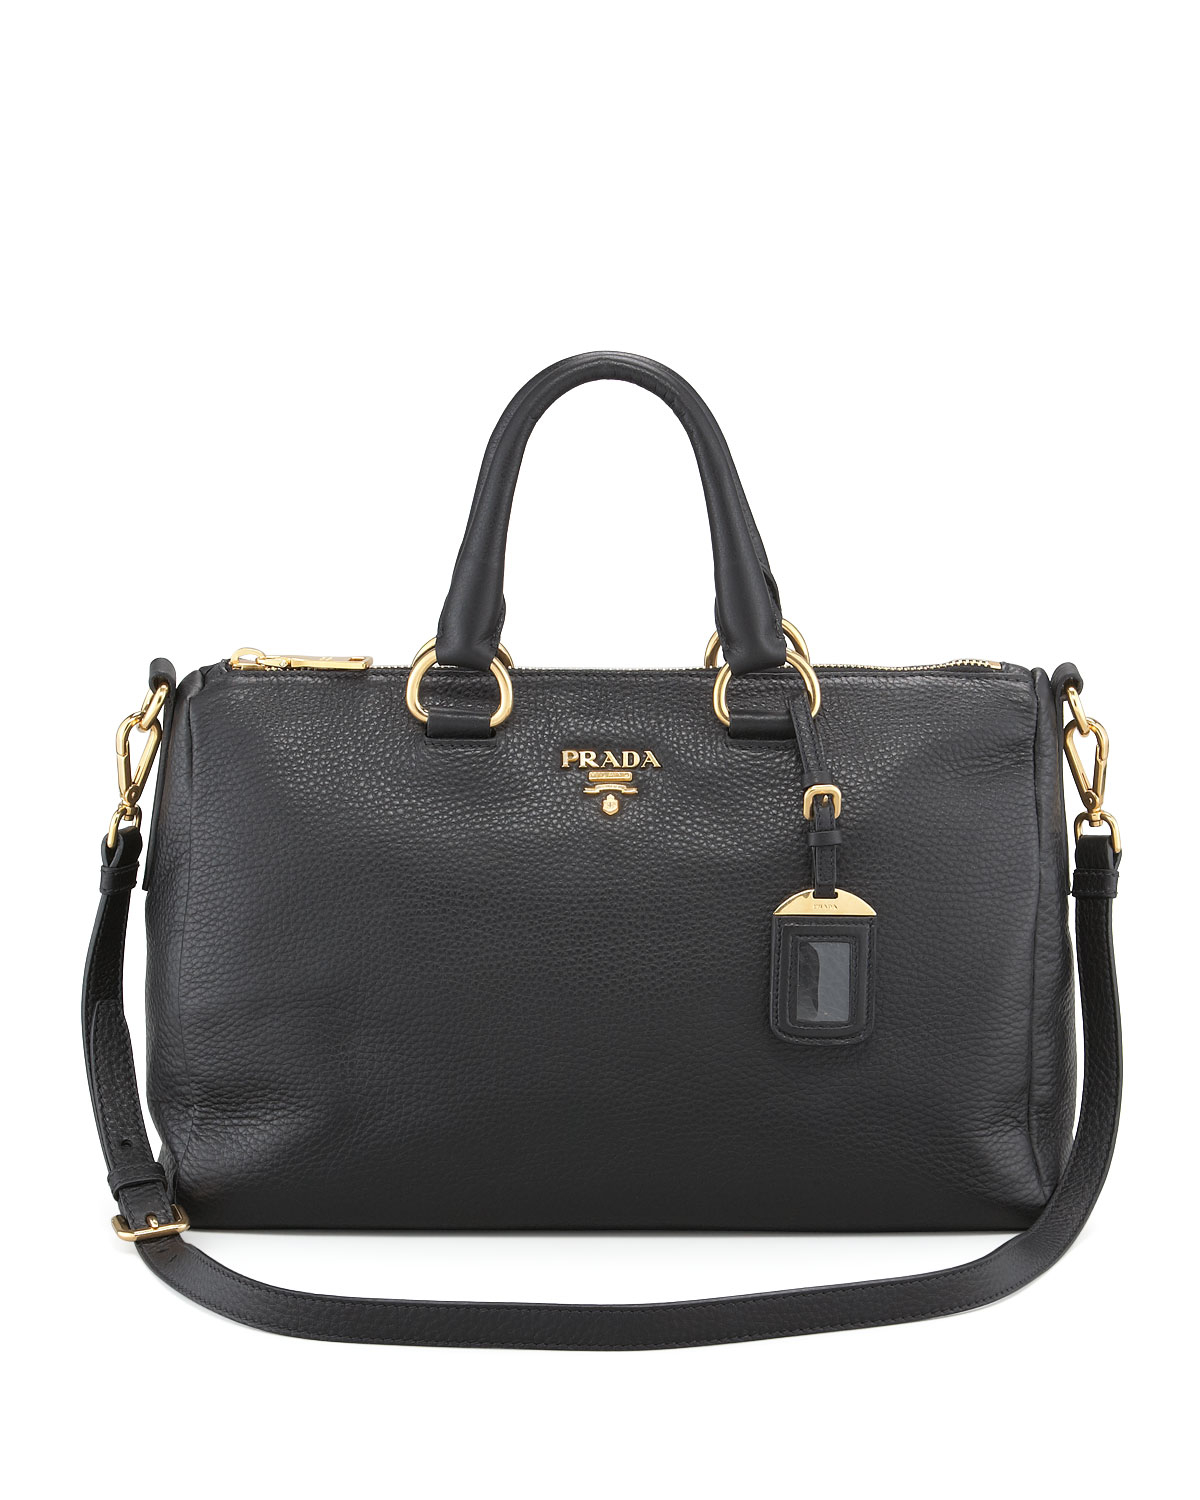 85e77f9b41cb21 Prada Vitello Daino East-West Tote Bag in Black - Lyst